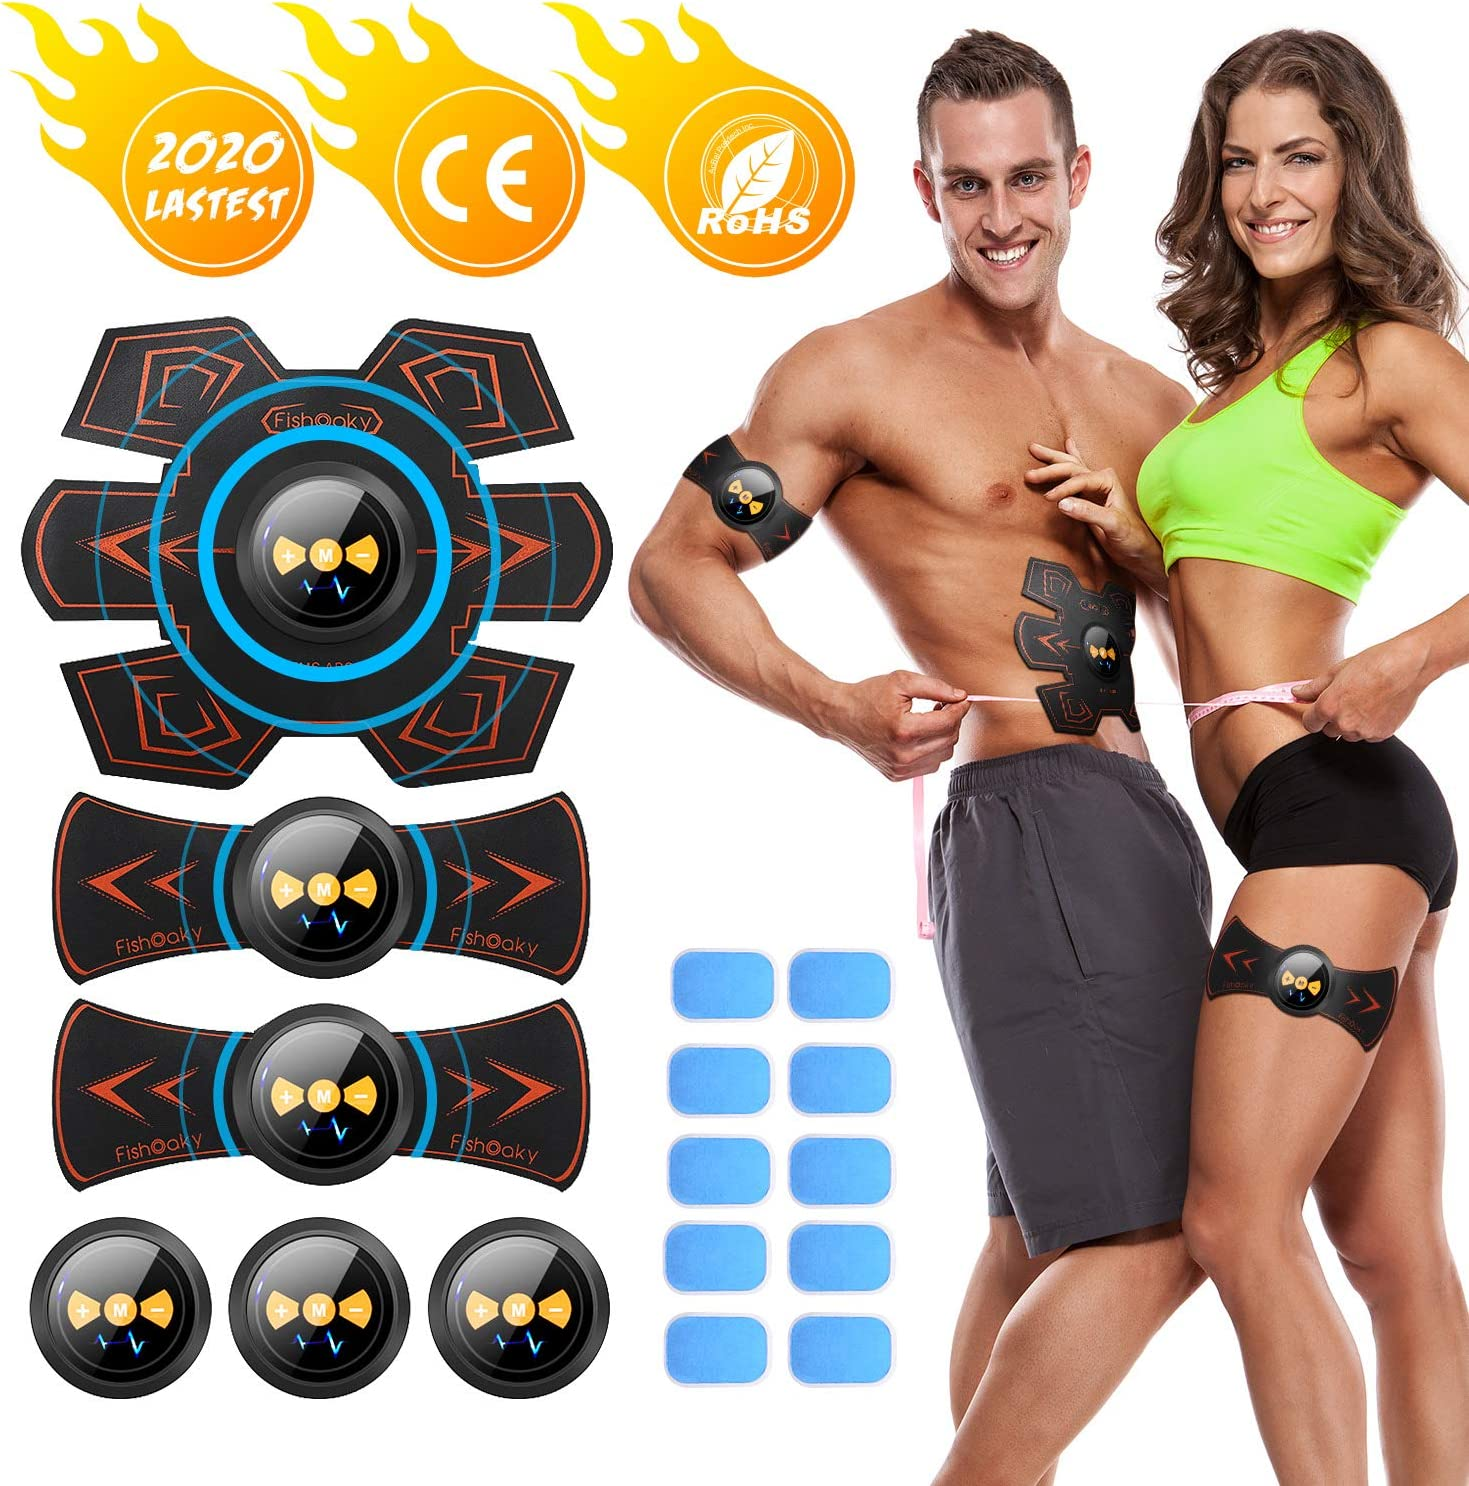 MATEHOM Abs Trainer,Ems Muscle Stimulator,Home Gym Belt,Workout Equipment For Me